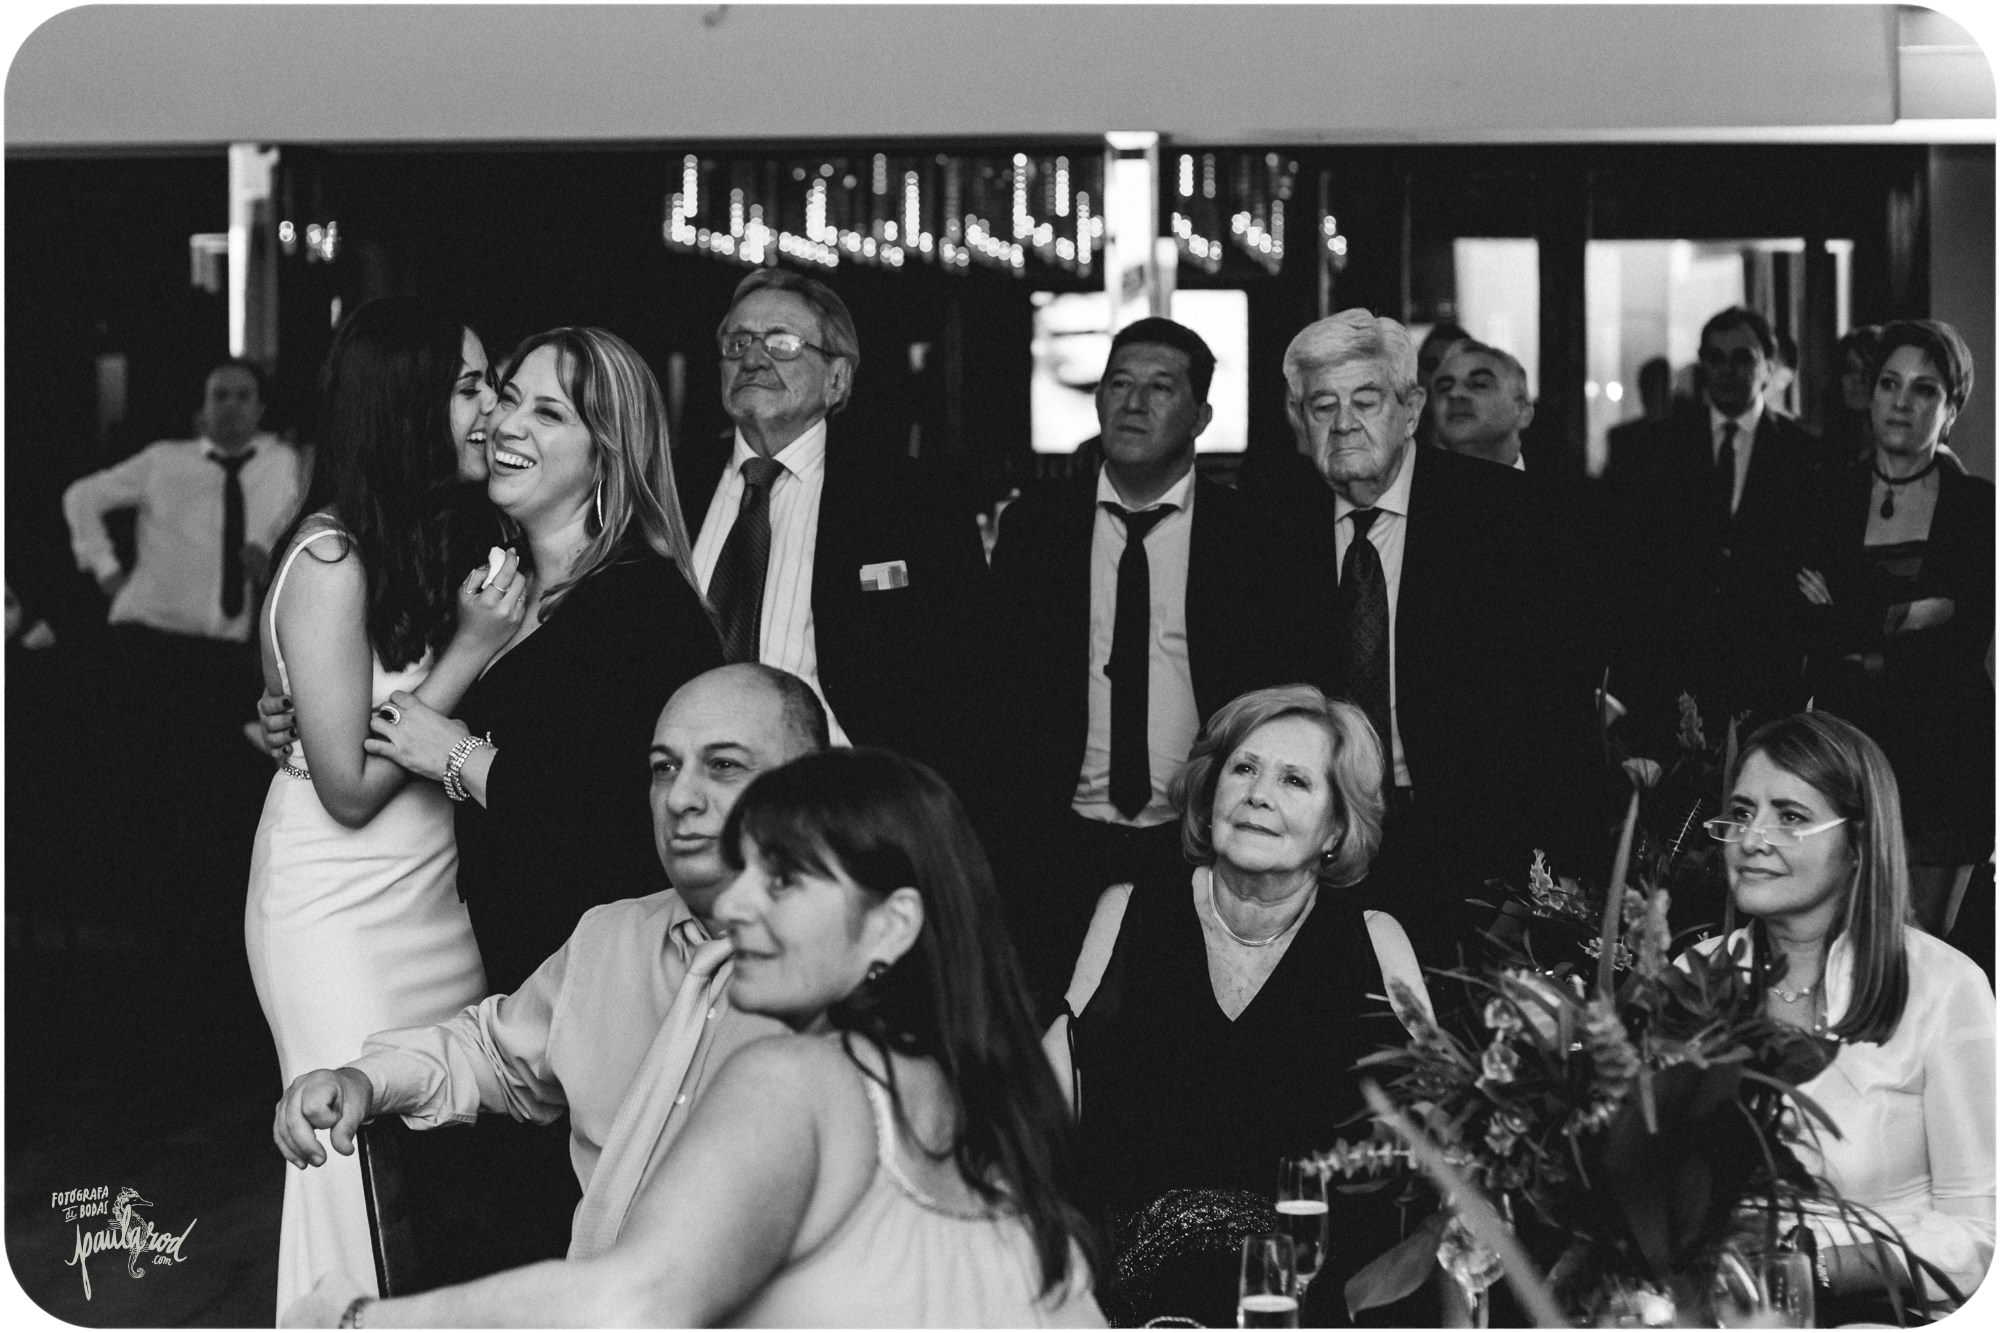 video_cronologico_para_eventos (6).jpg